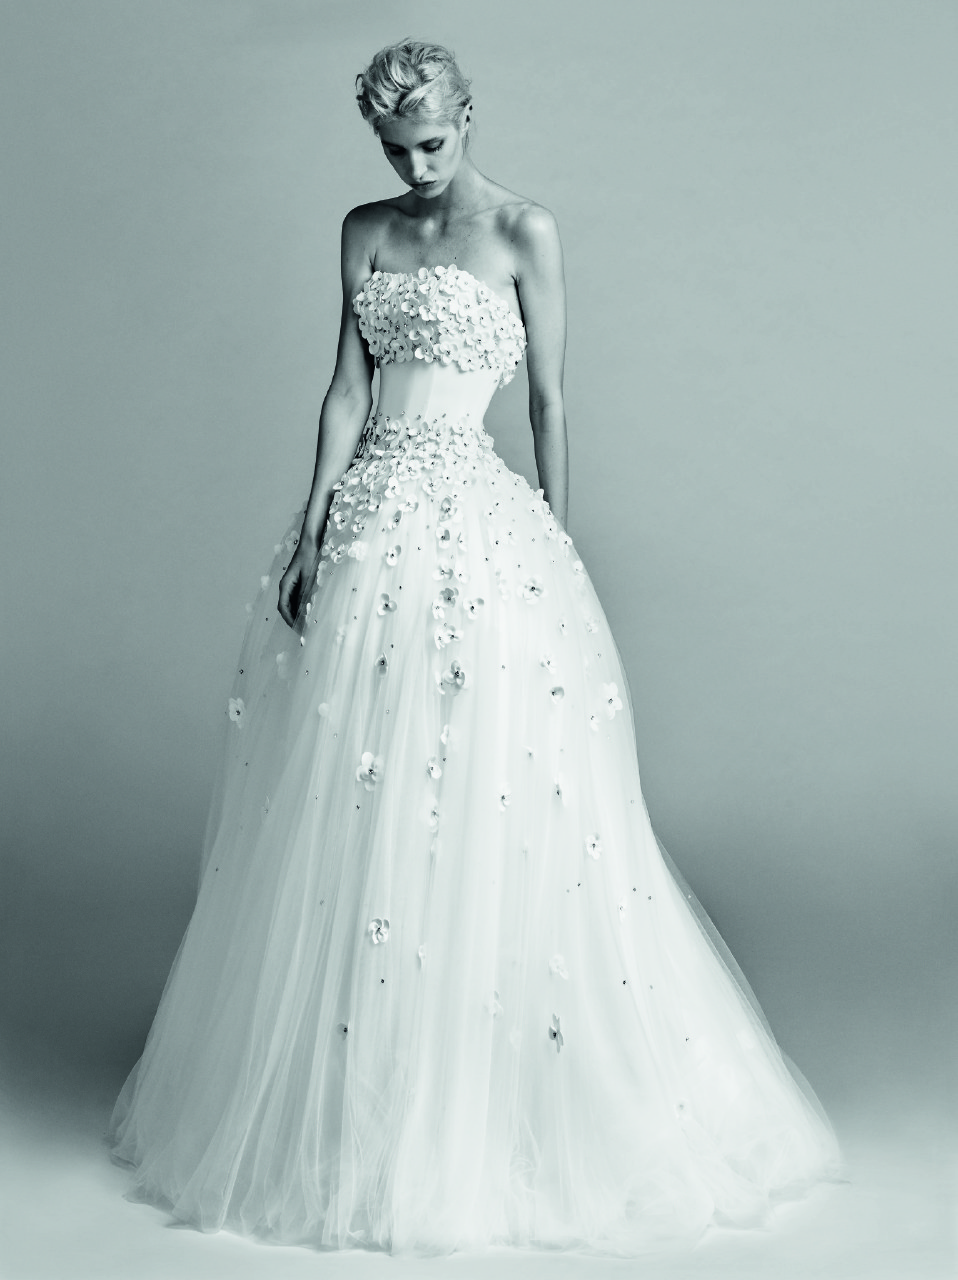 Floral Appliques on Viktor & Rolf wedding gown